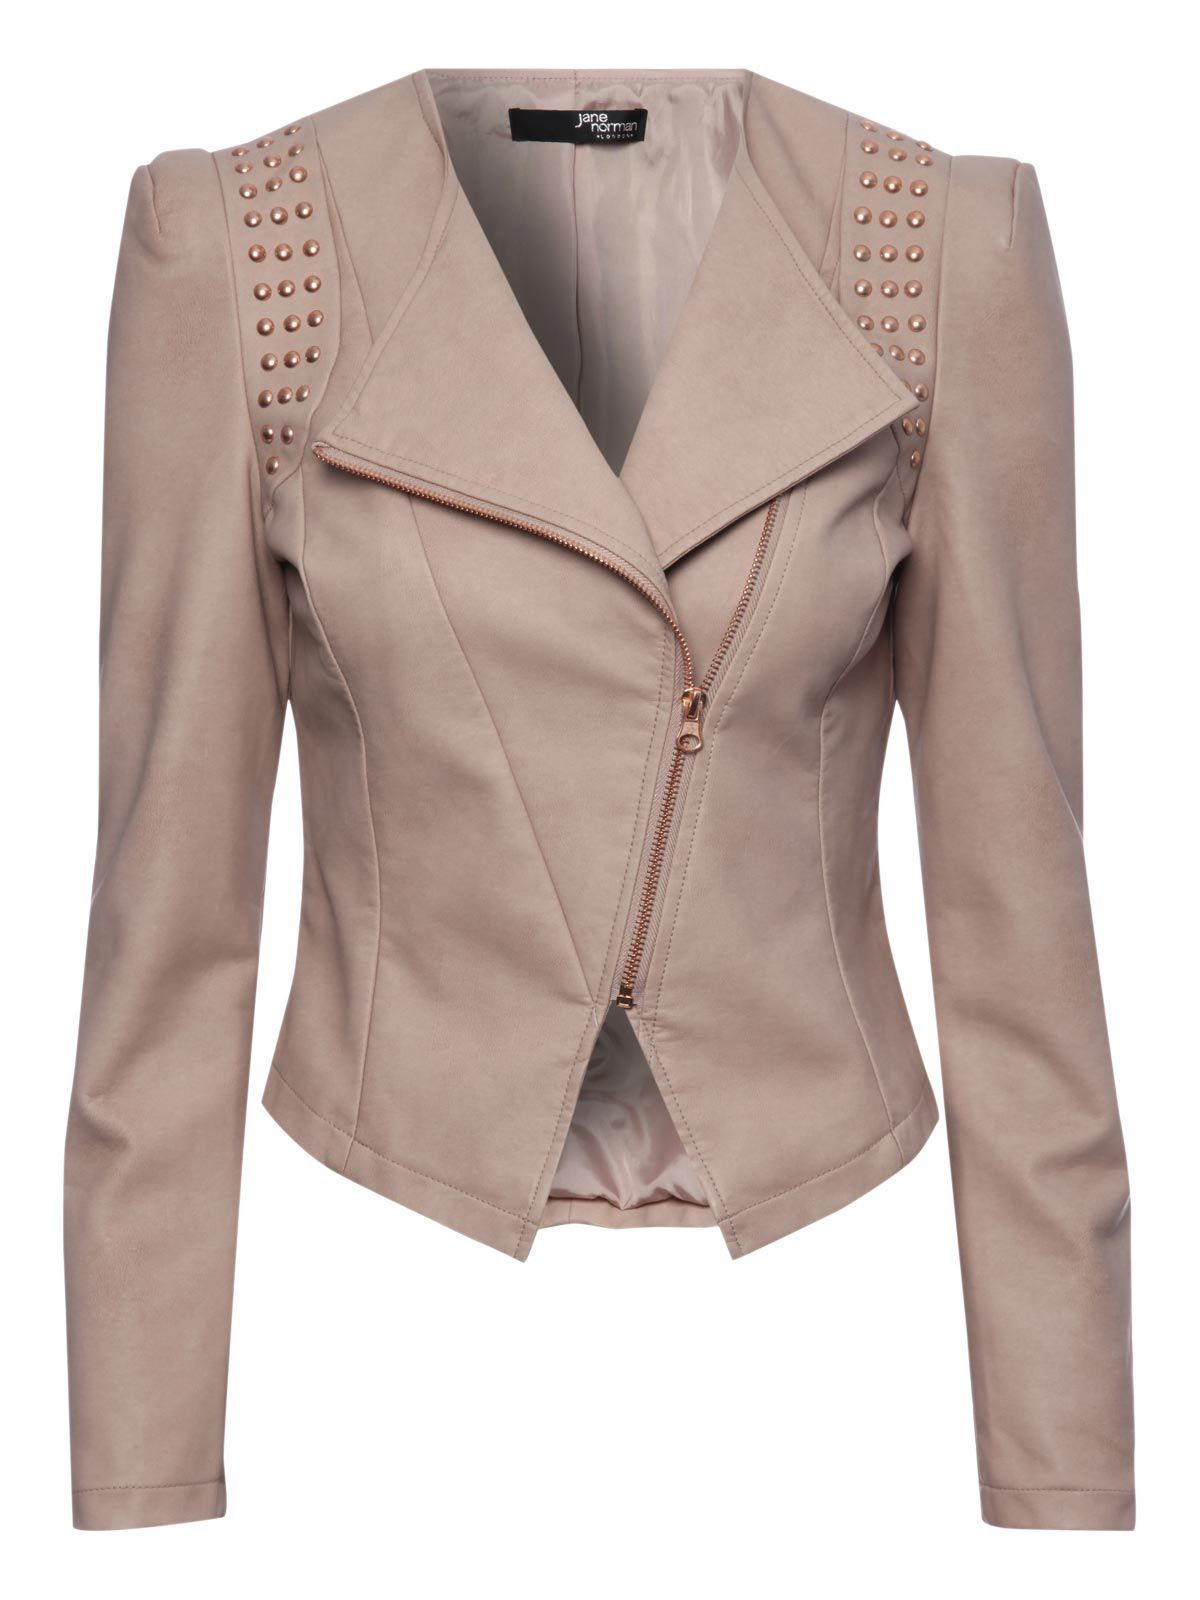 Pu studded sharp shoulder jacket